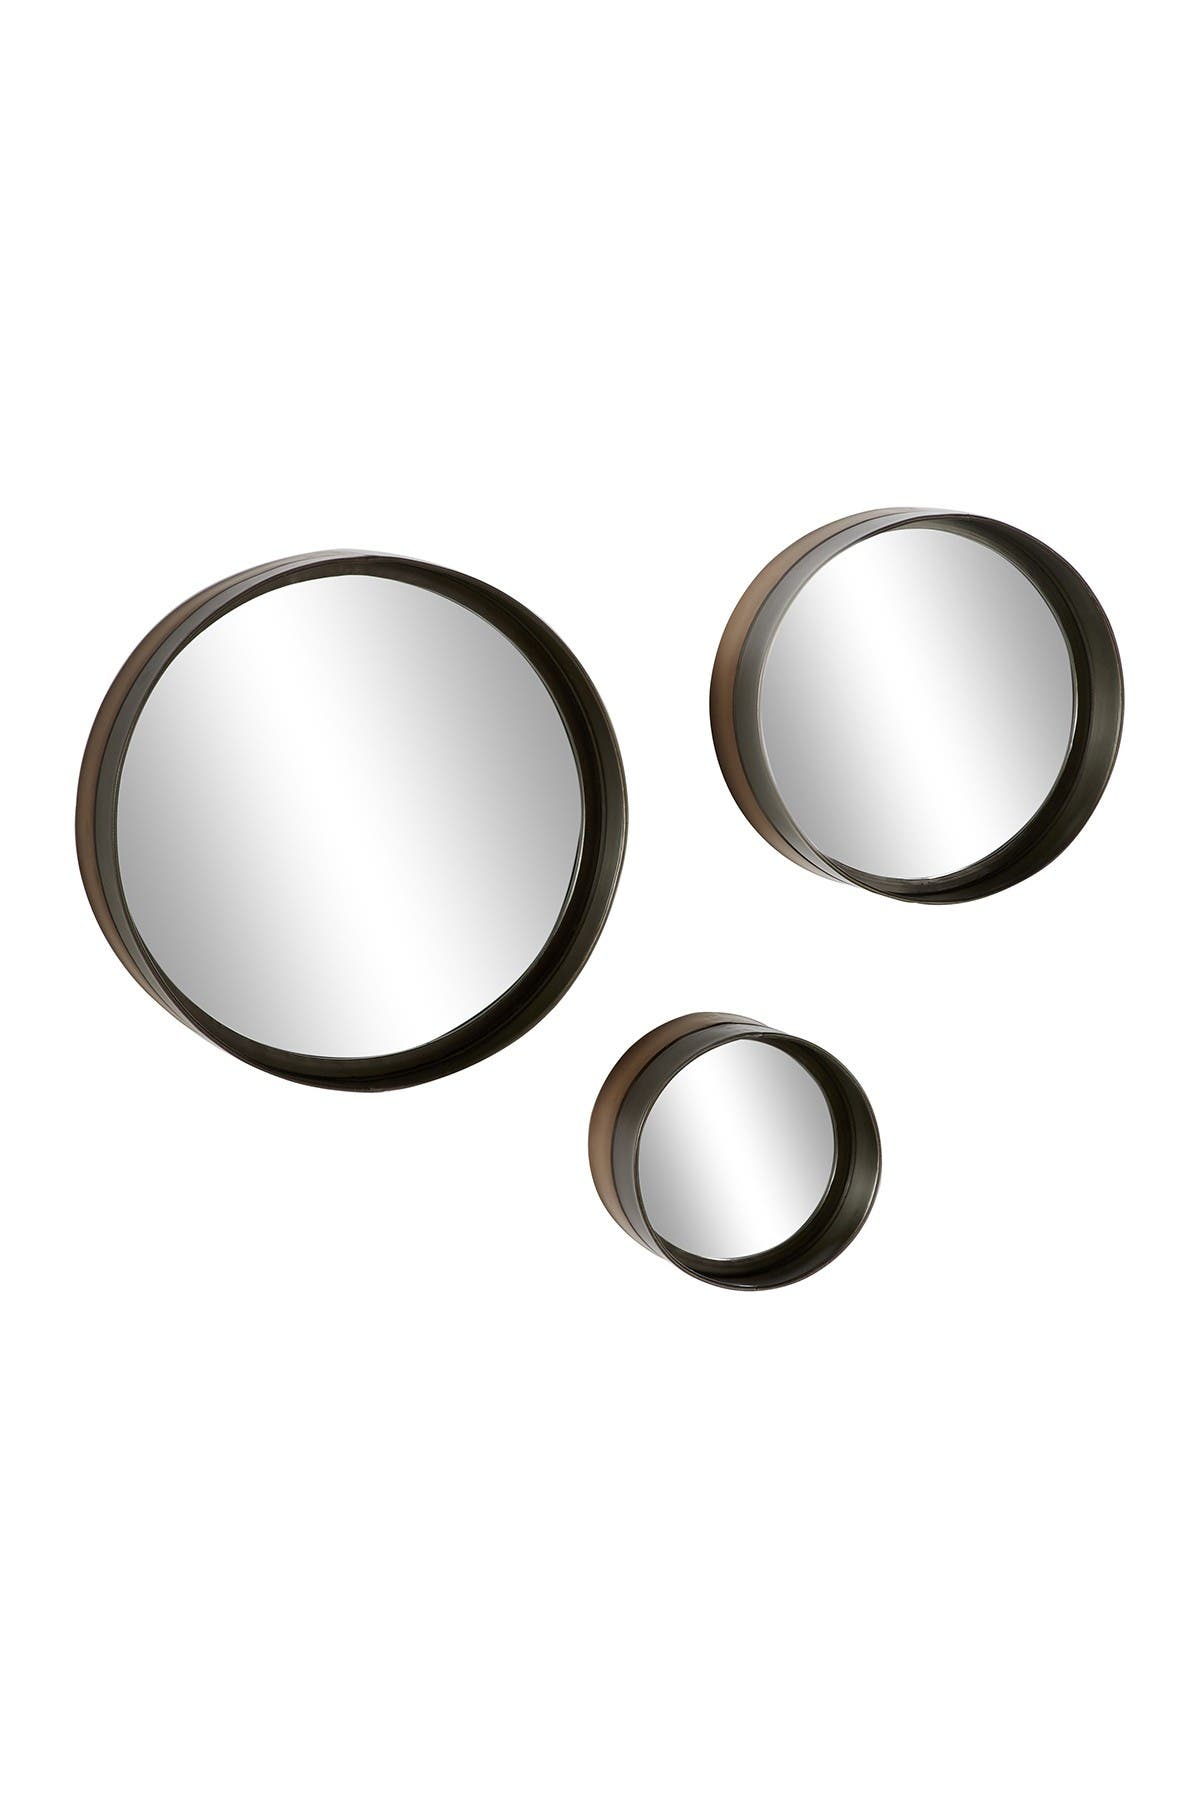 Willow Row Round Black And Bronze Rimmed Metal Wall Mirrors Set Of 3 16 12 8 Nordstrom Rack